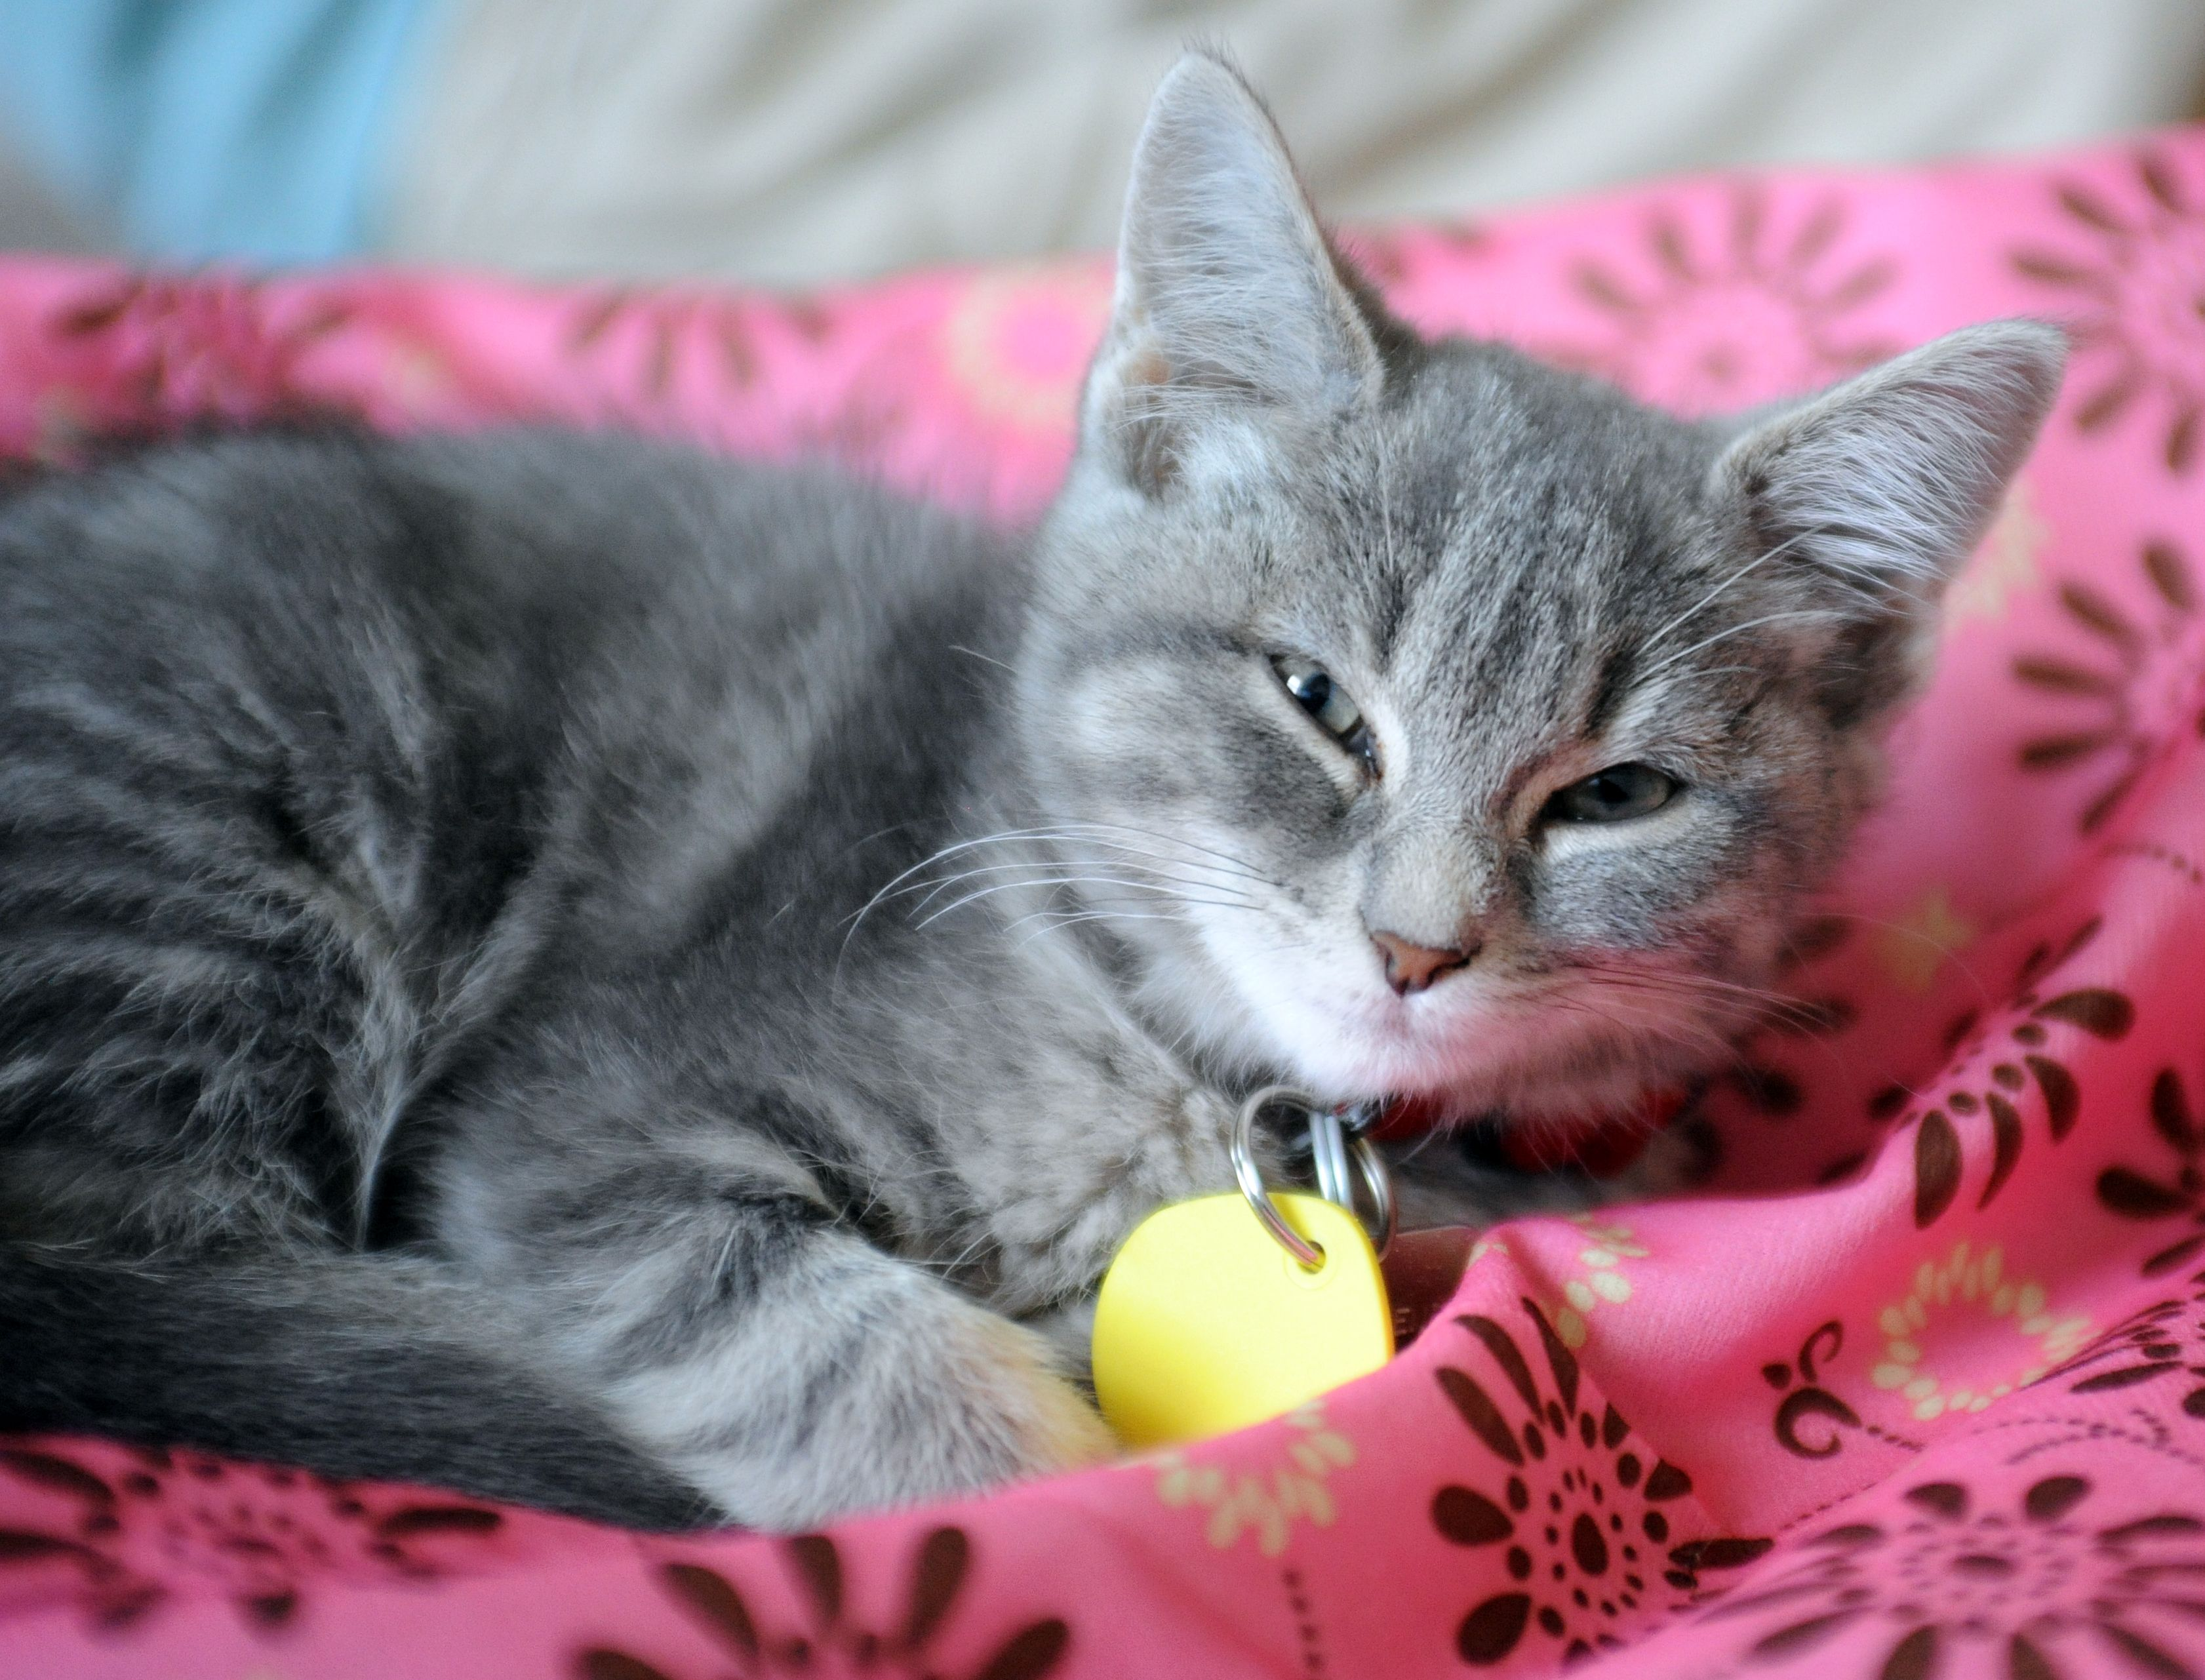 Humane Society discounts cat adoptions through July